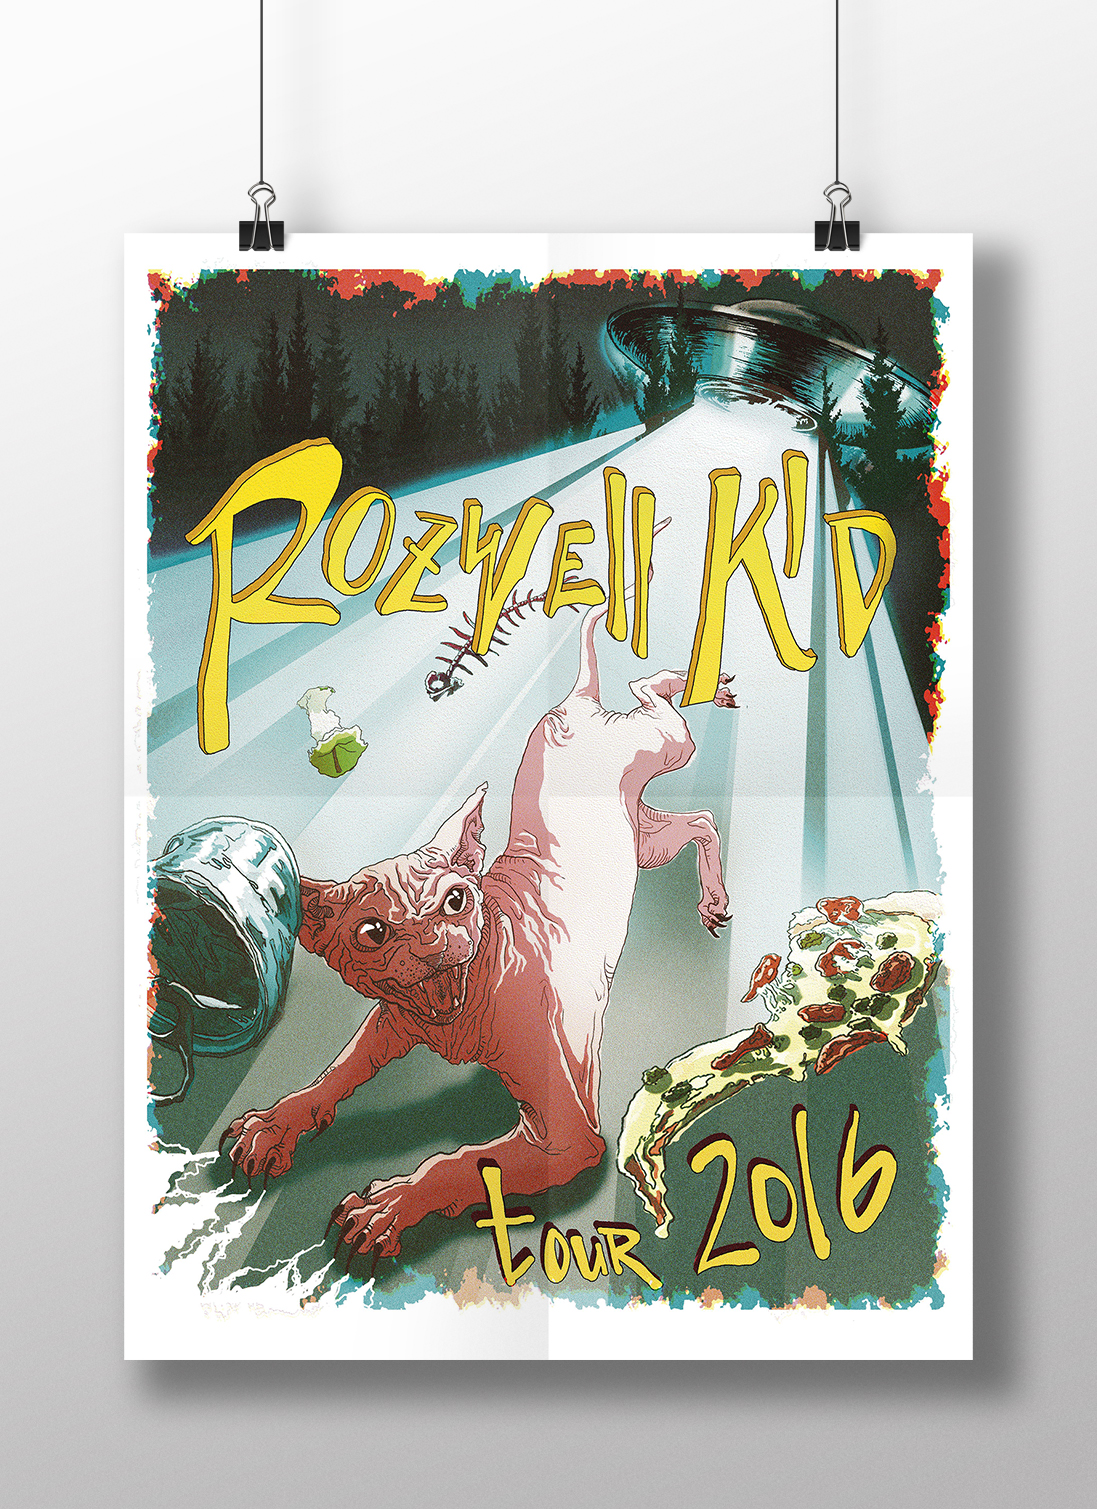 Rozwell Kid tour poster